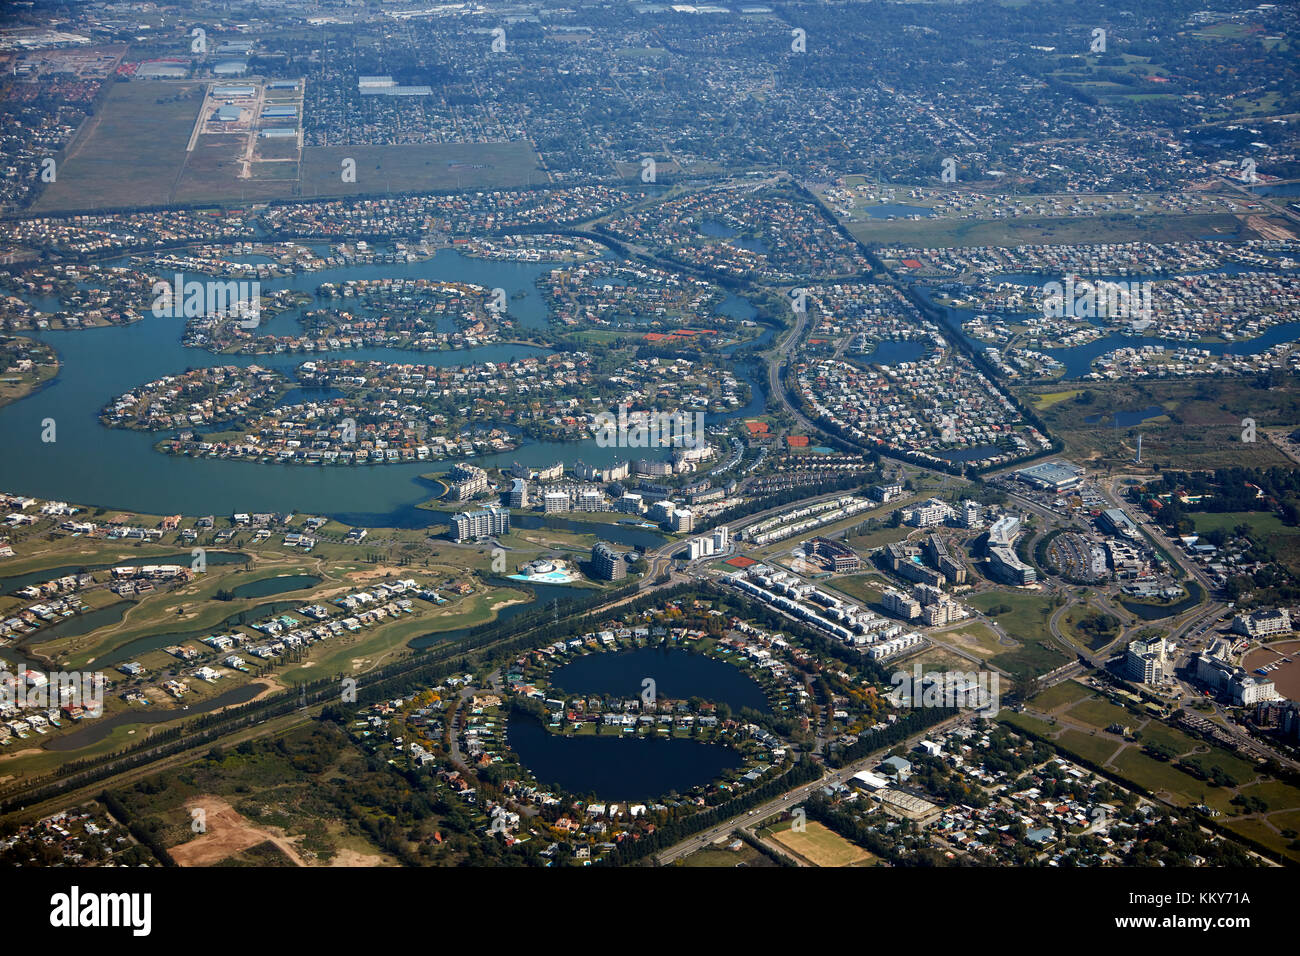 Waterways and houses, Nordelta, northern Buenos Aires, Argentina, South America - aerial - Stock Image